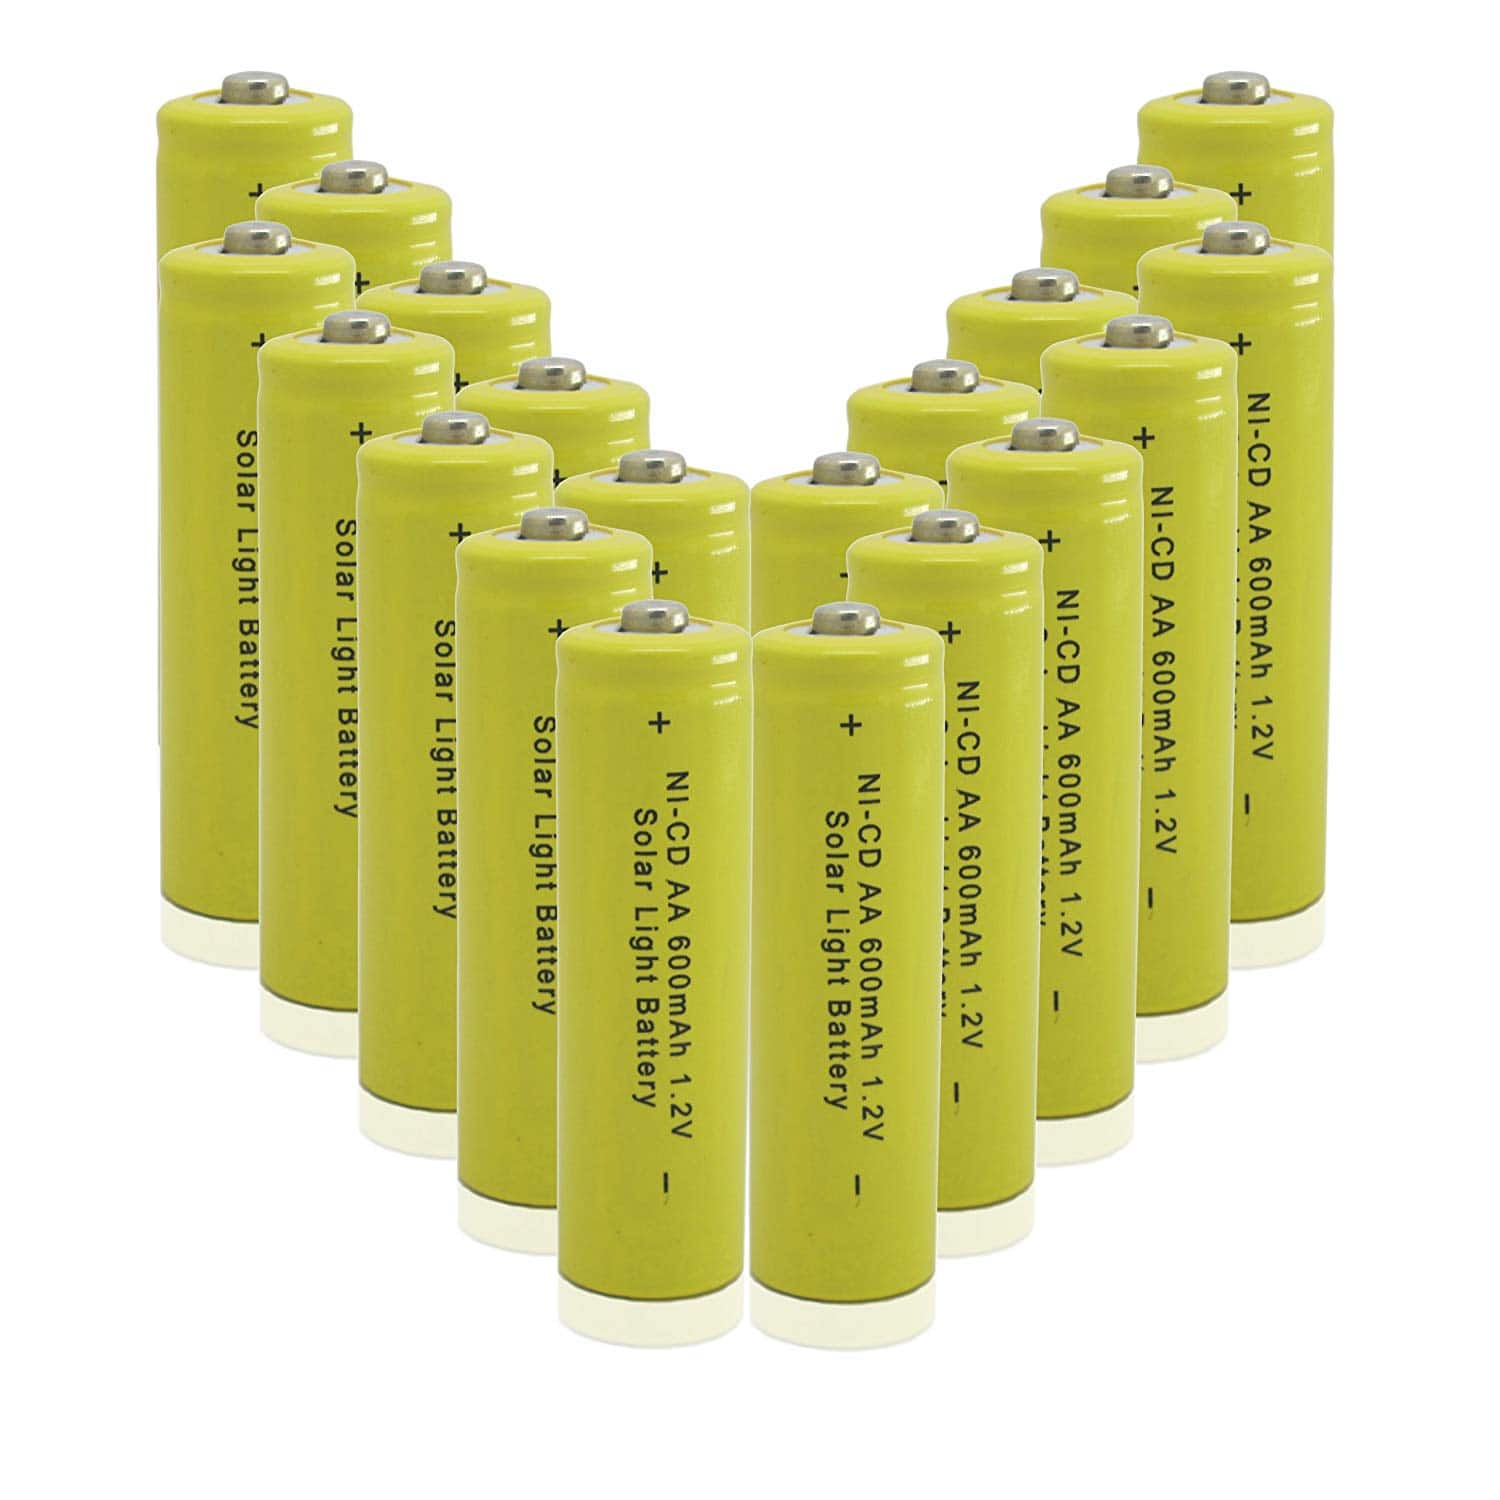 GEILIENERGY NICD AA Batteries for Solar Light (Pack of 20), Yellow Color as low as $11.83 with 10% Amazon S&S & 10% off clipped coupon